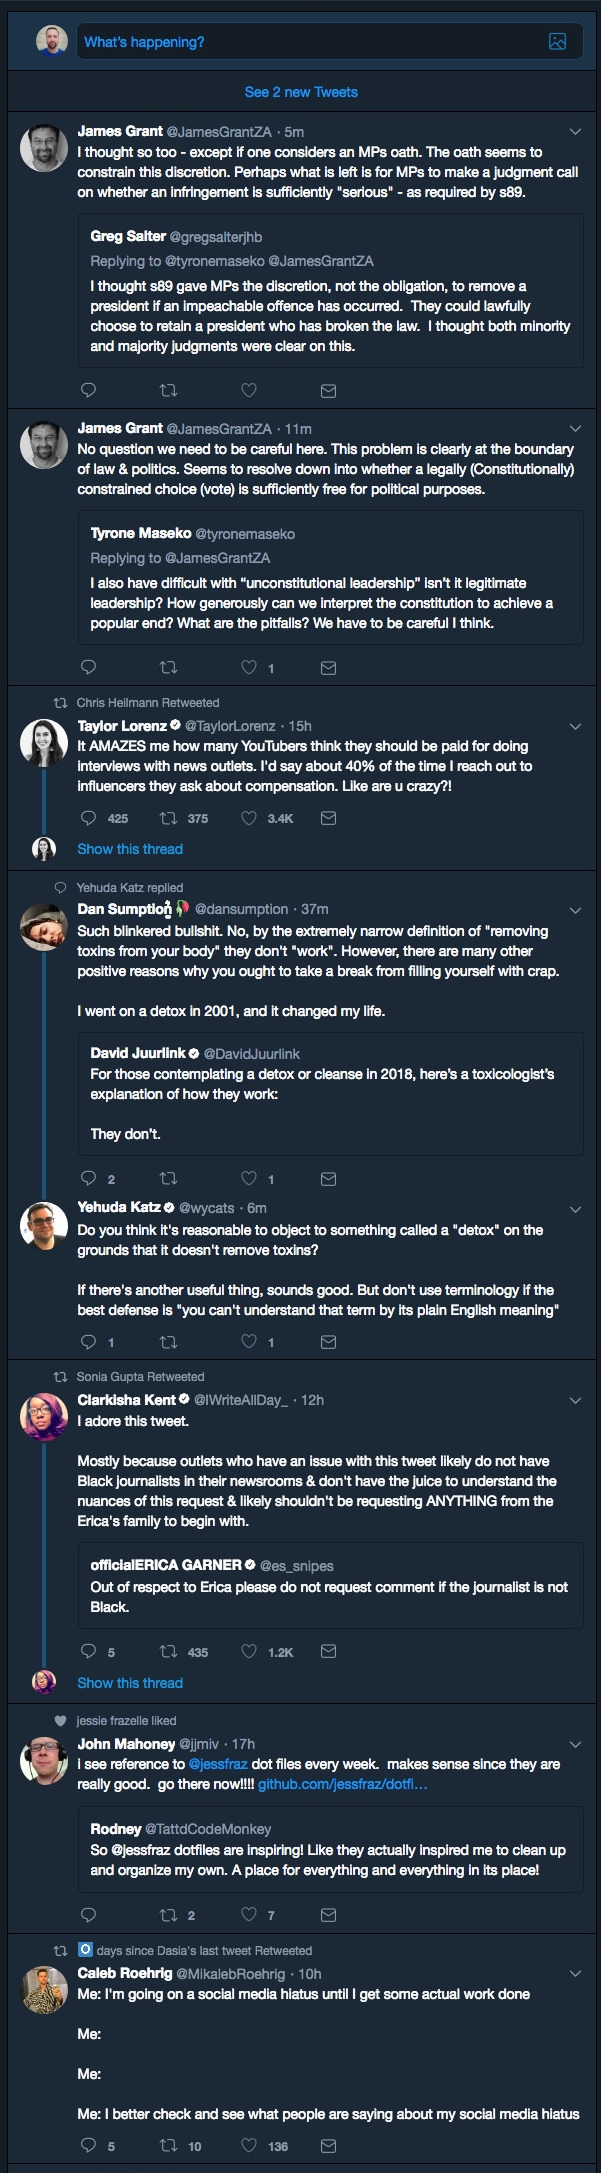 A sample of my mess of a Twitter feed.